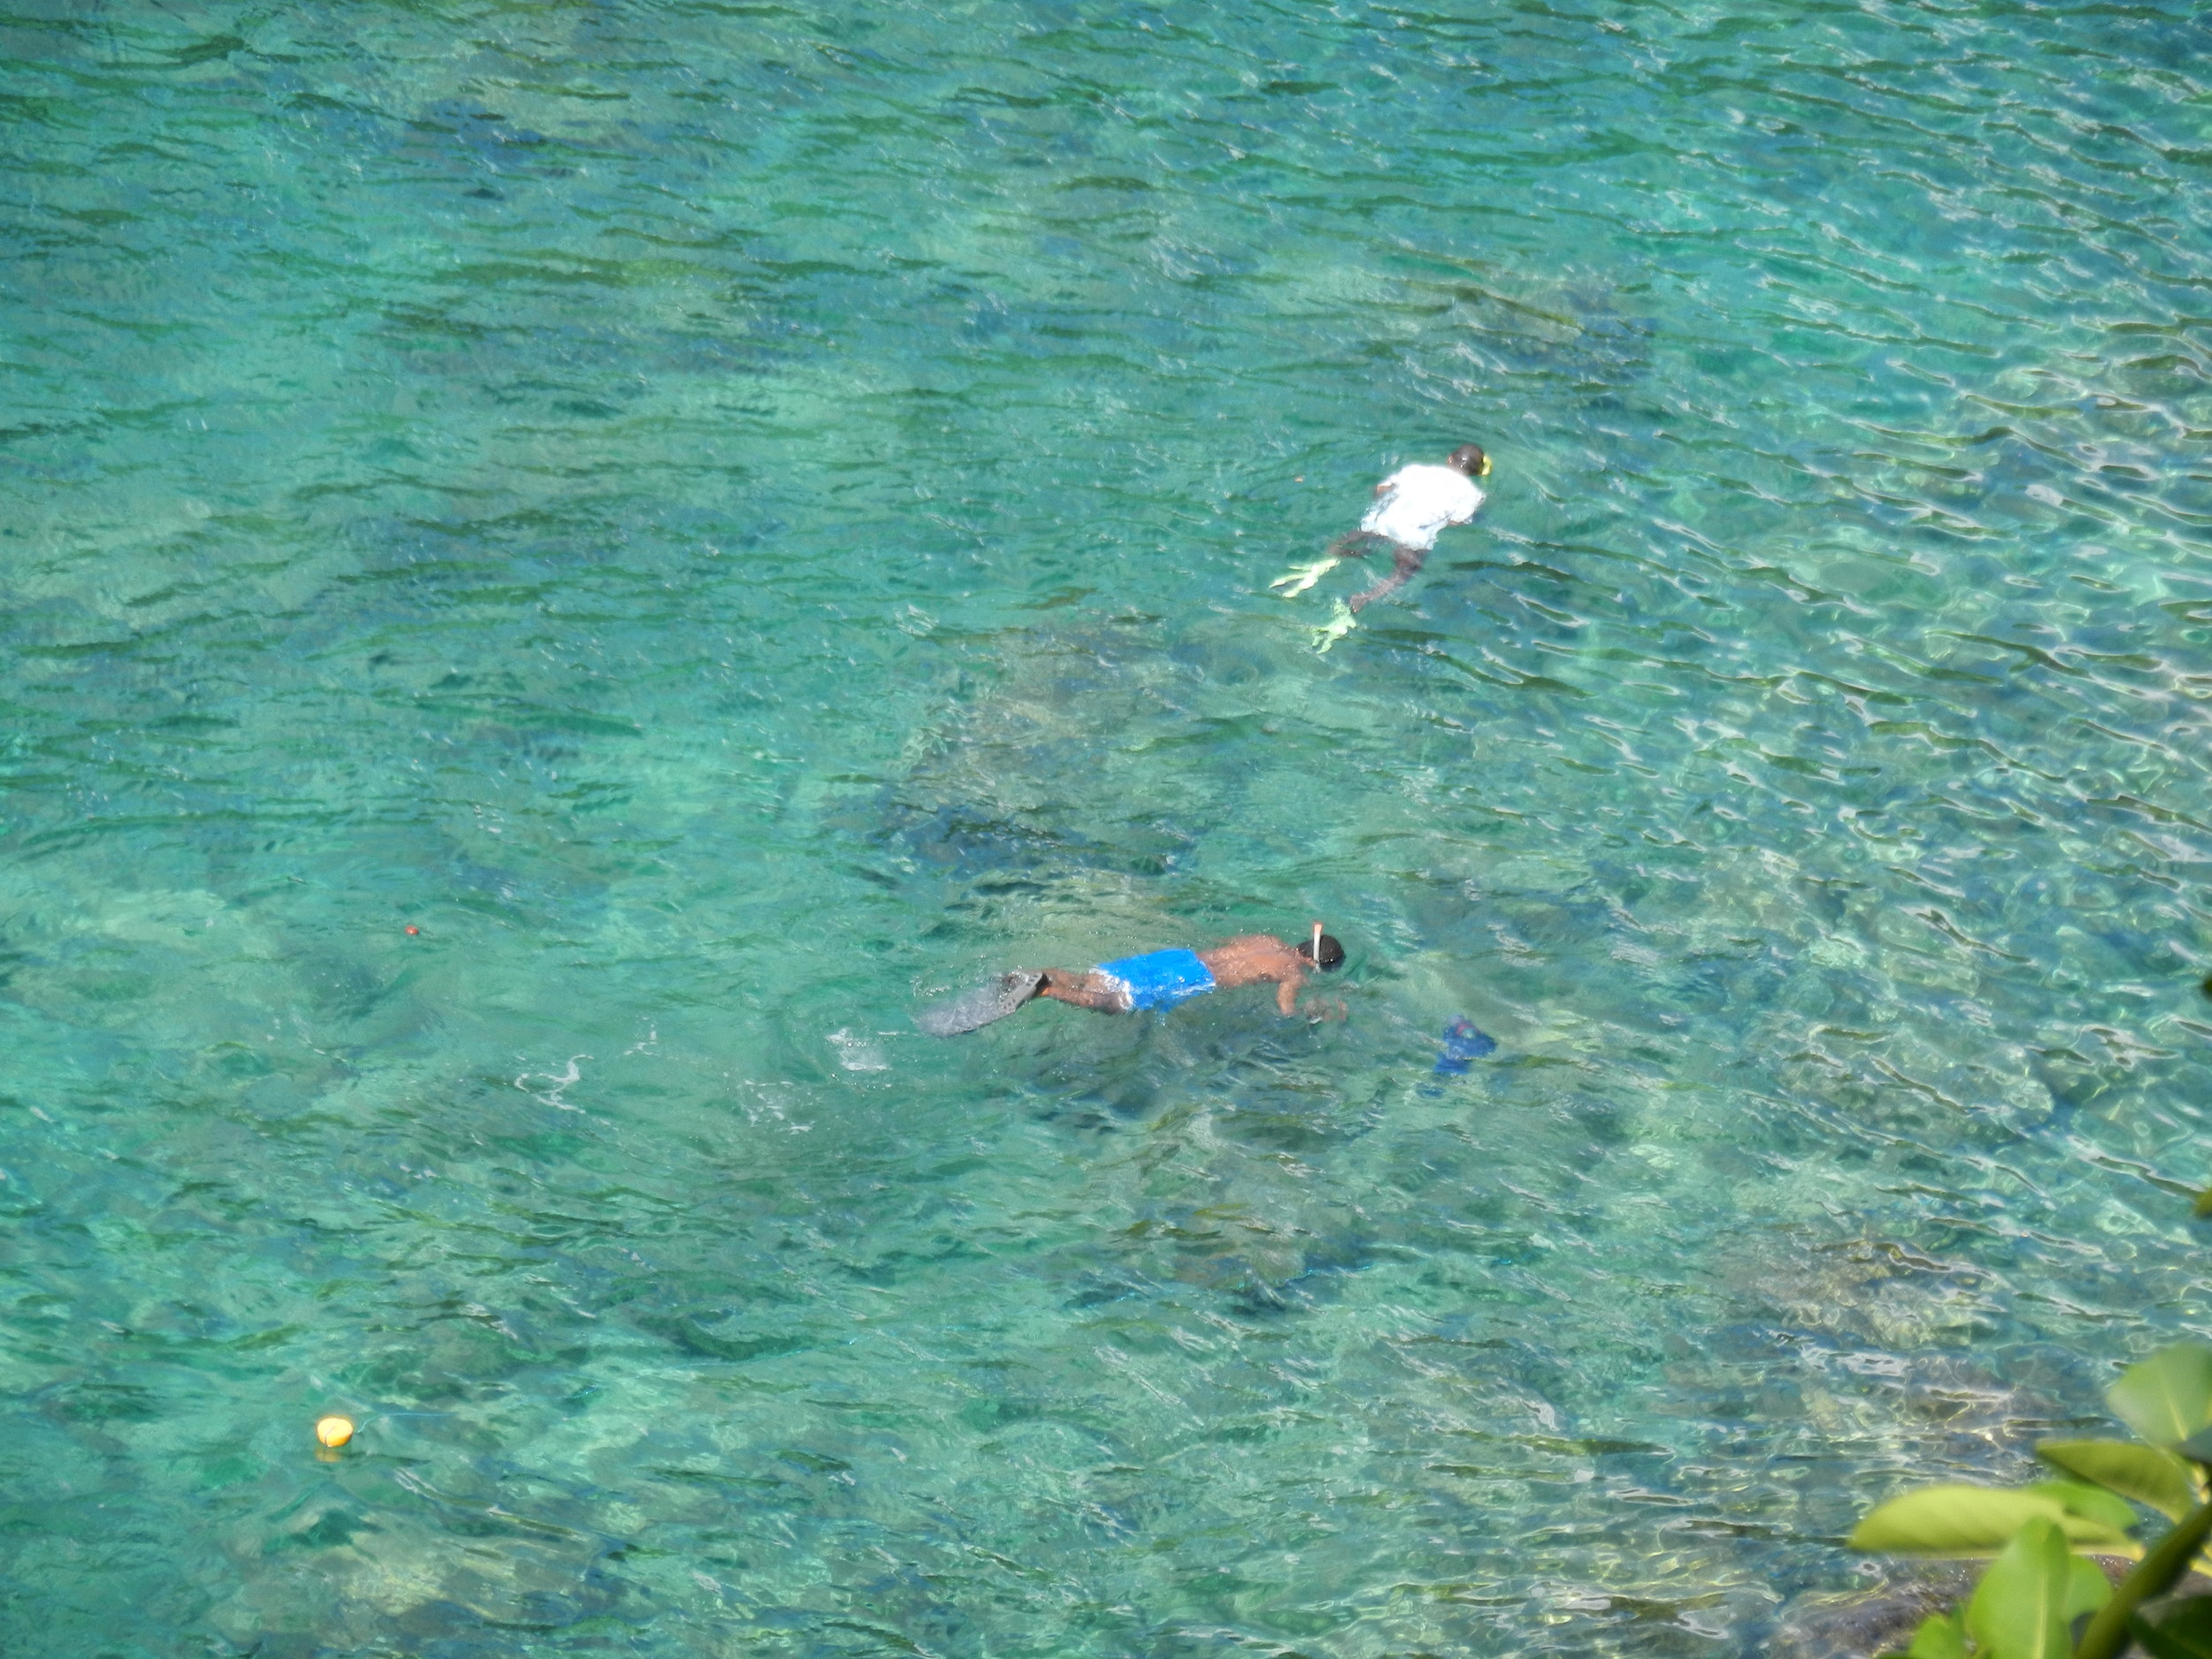 Snorkeling in the Bight